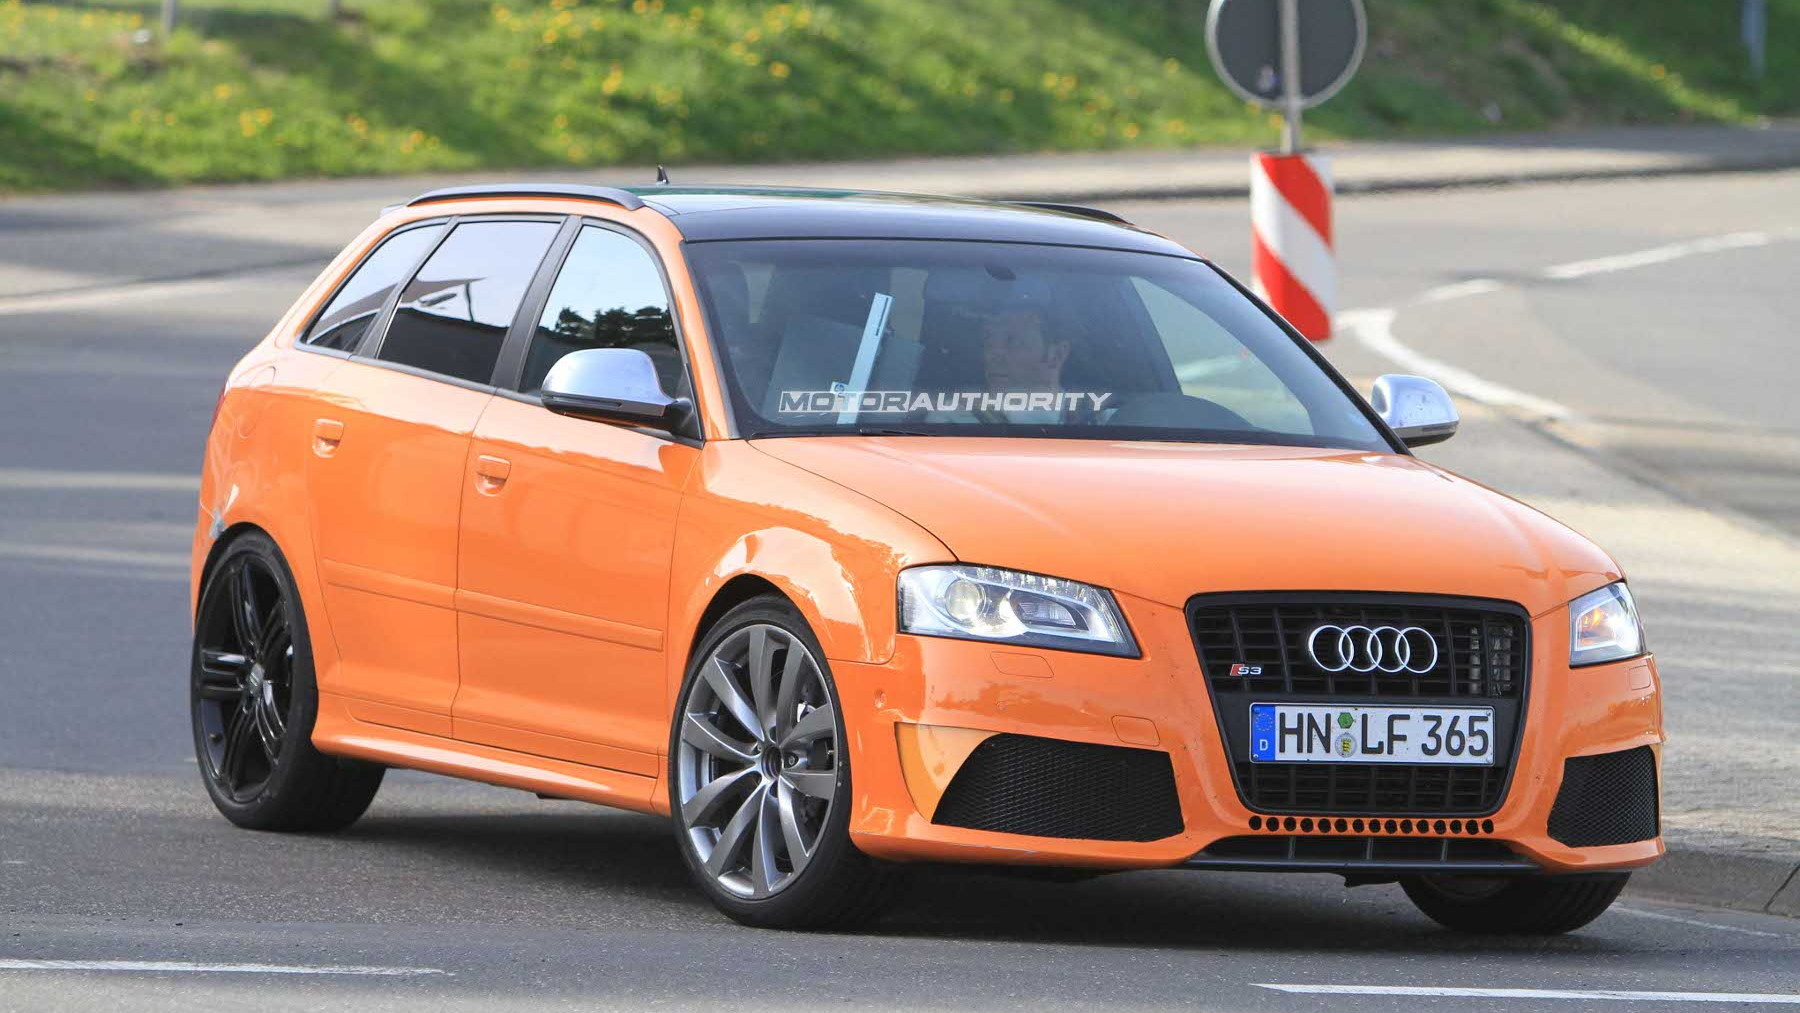 2011 Audi RS3 test mule spy shots